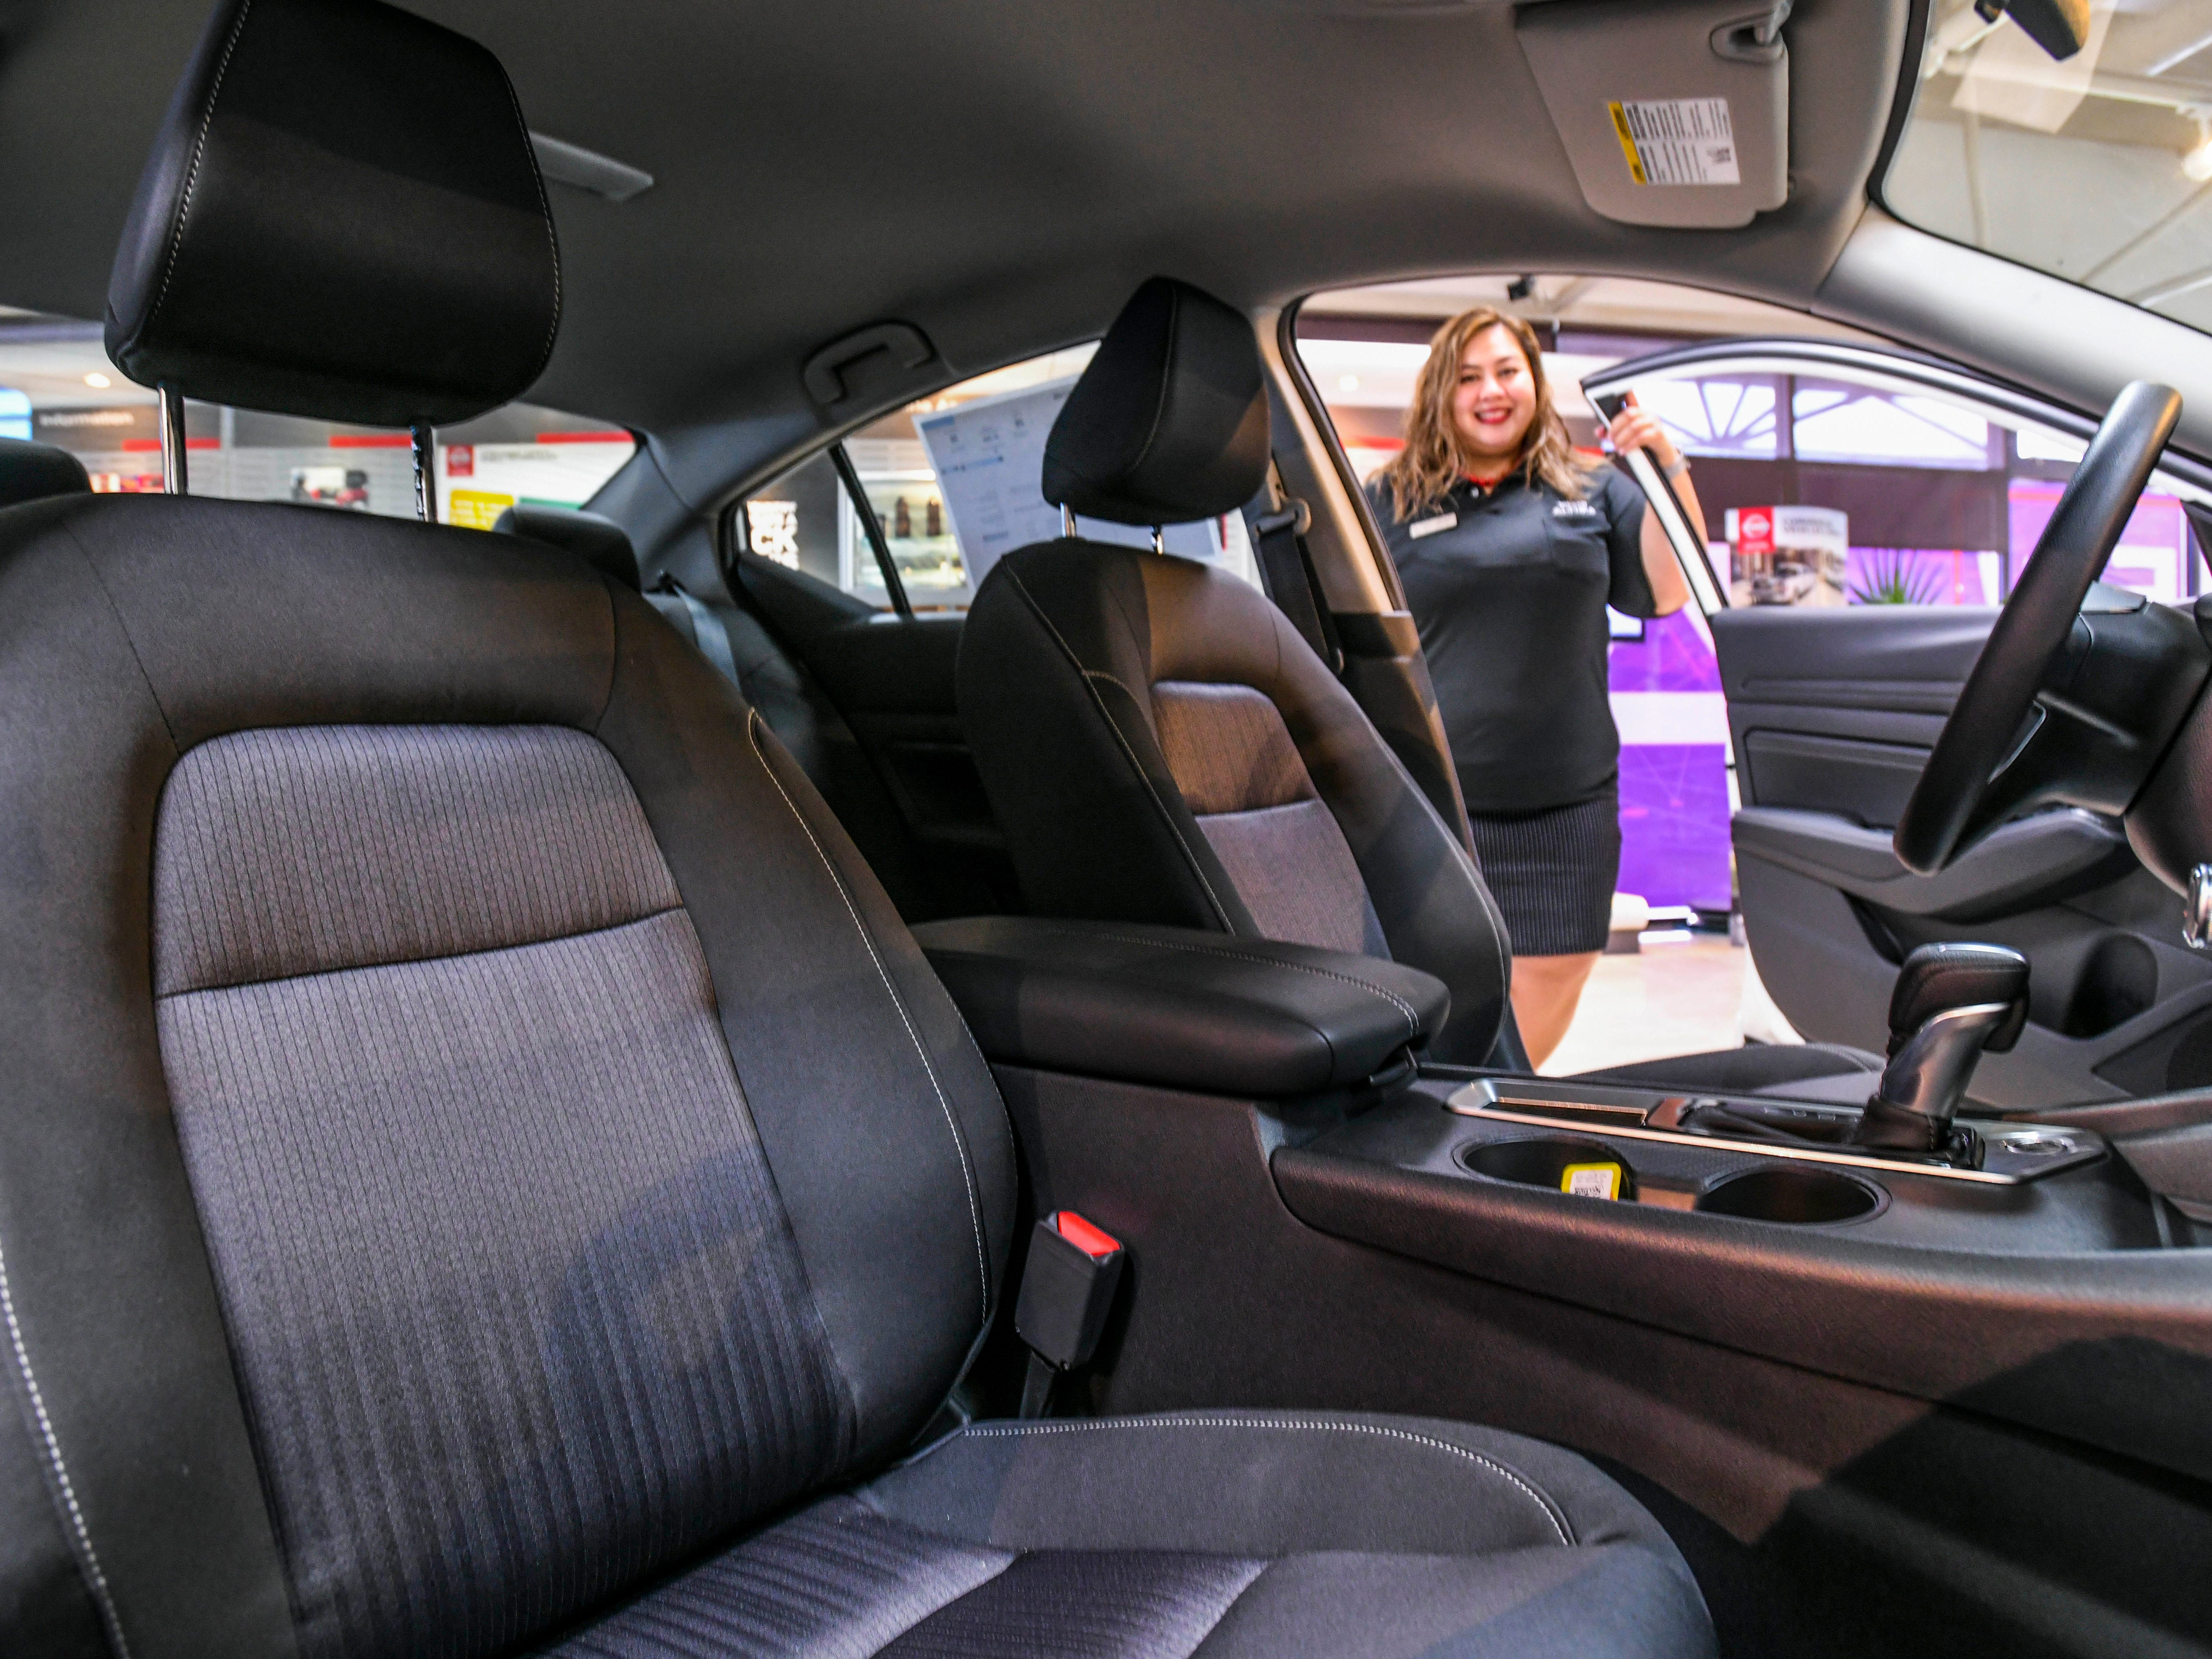 Nissan Guam Sales Consultant Marie Pilar Cruz offers a glance of the enhanced NASA-inspired Zero Gravity front seats that could be found in the redesigned 2019 Nissan Altima while at the dealership's showroom in upper Tumon on Friday, Jan. 18, 2019.